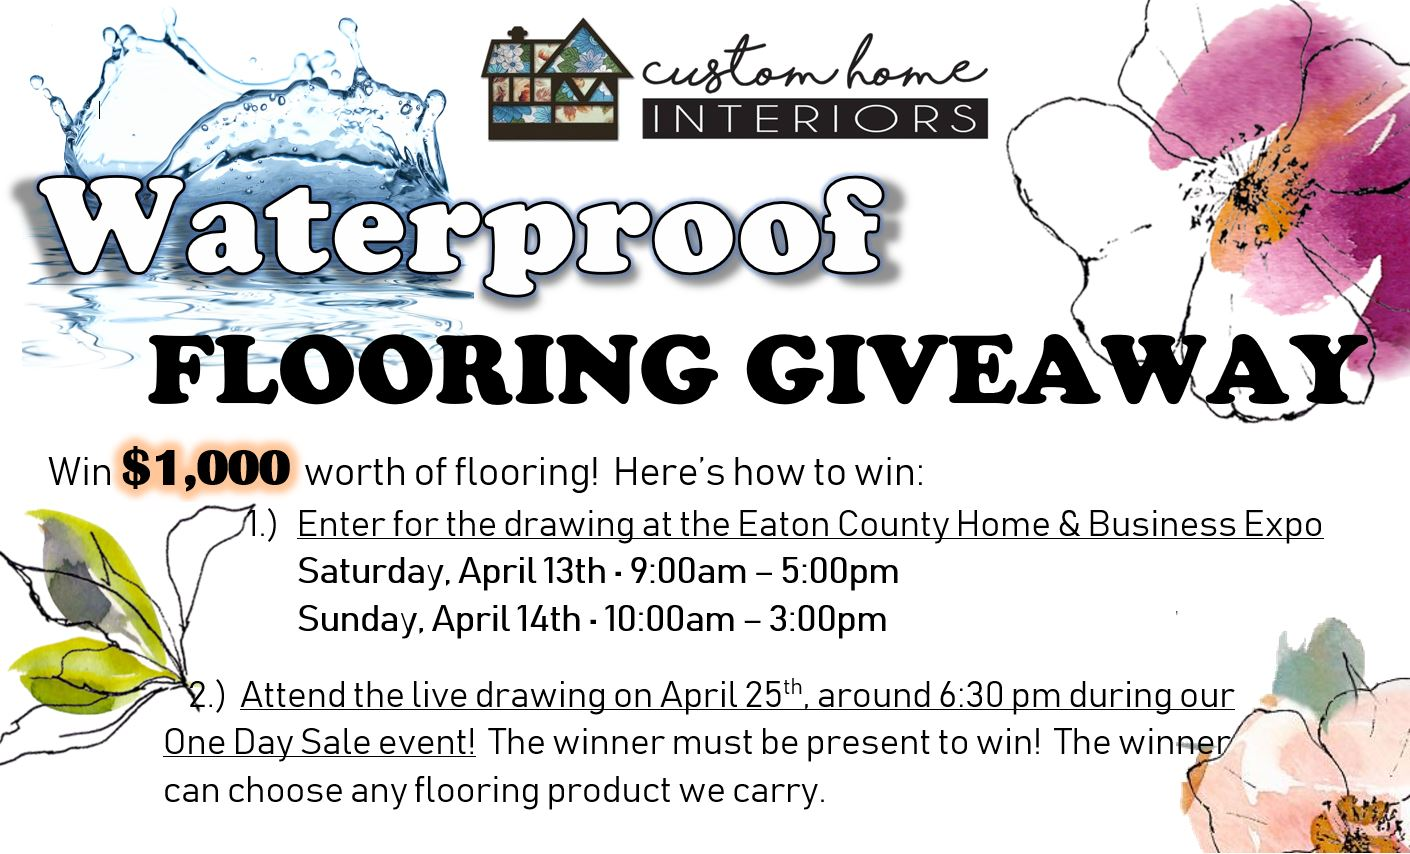 Waterproof Flooring Giveaway Flier